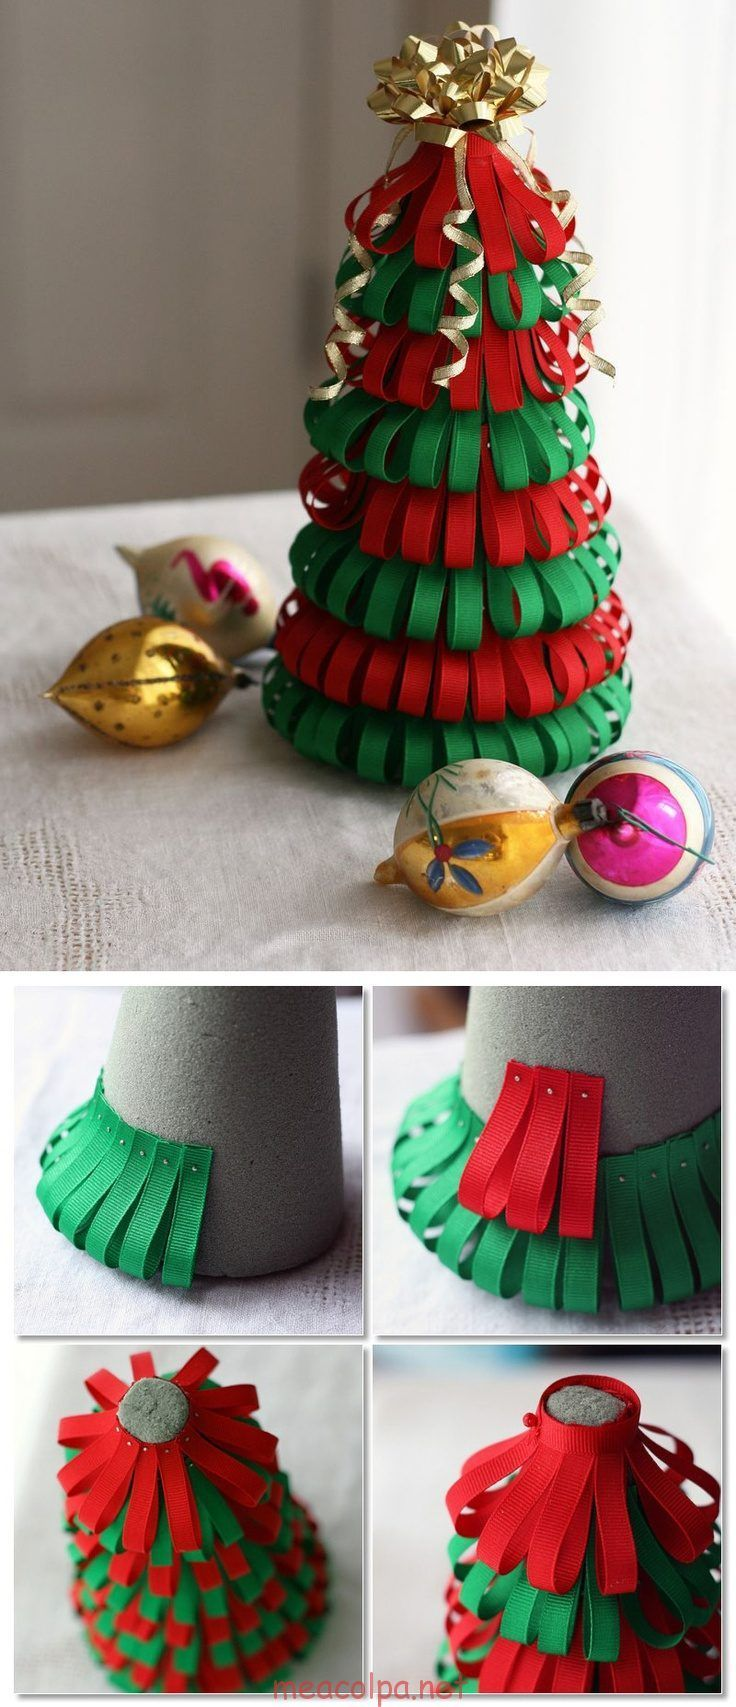 2016 12 christmas diy paper decorations 187 home design 2017 - 38 Christmas Crafts Decoration Ideas You Can Try This Year